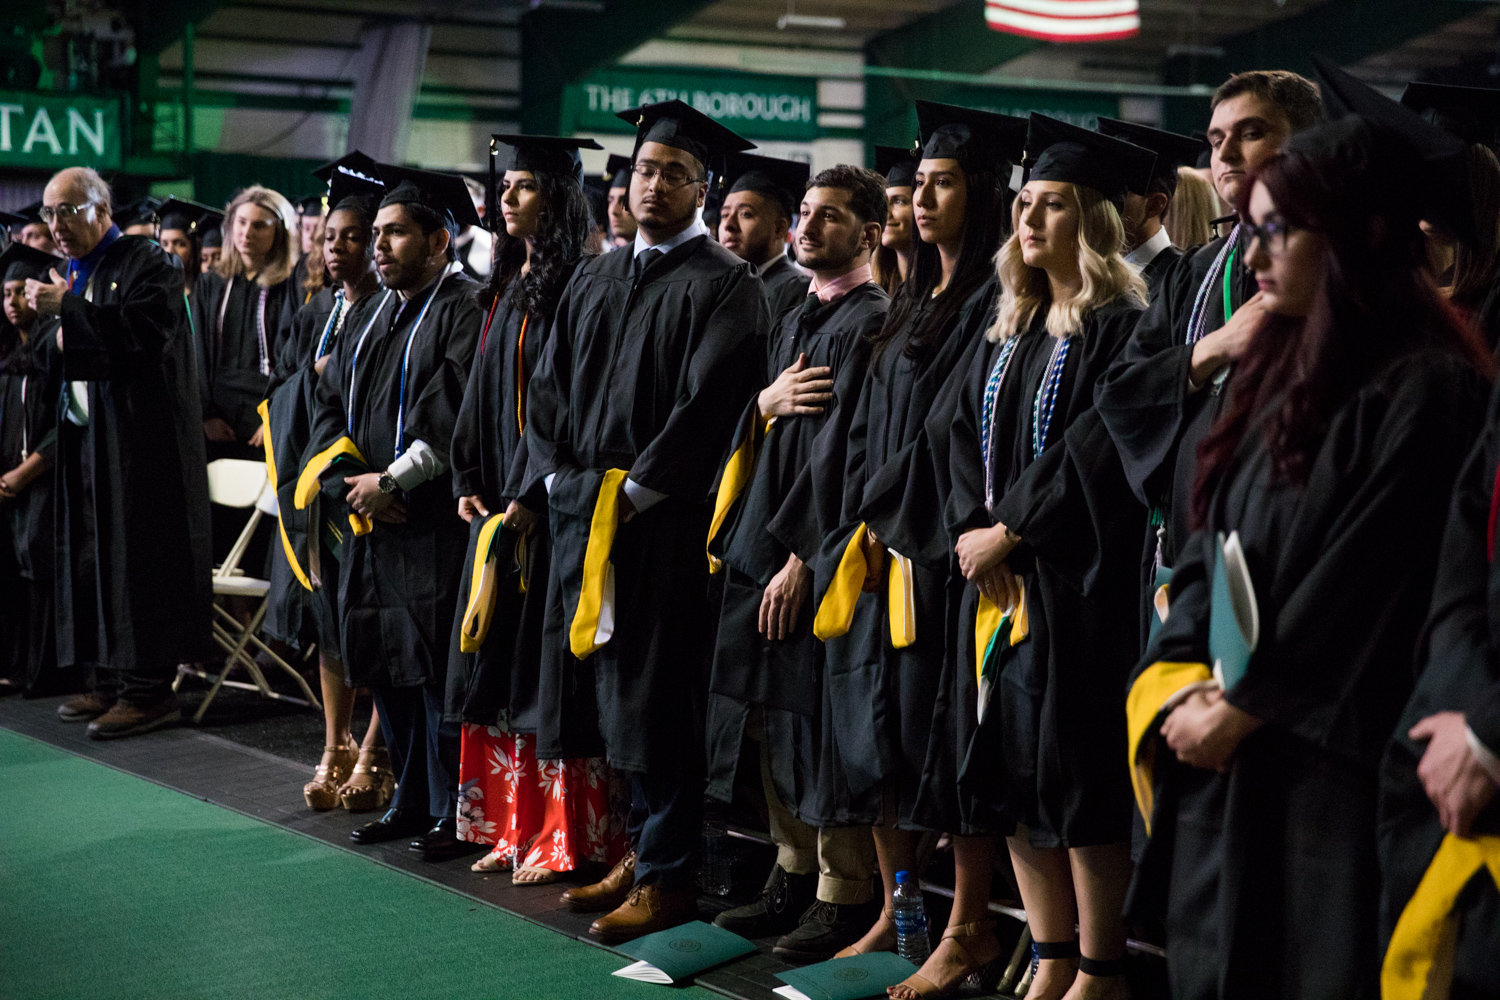 Last year's graduating class at Manhattan College had its share of hurdles to clear when it came to commencement — ultimately leading to U.S. Supreme Court Justice Sonia Sotomayor speaking — and it would appear the Class of 2020 is facing similar obstacles. With three months to go until graduation, the school has yet to confirm a commencement speaker.